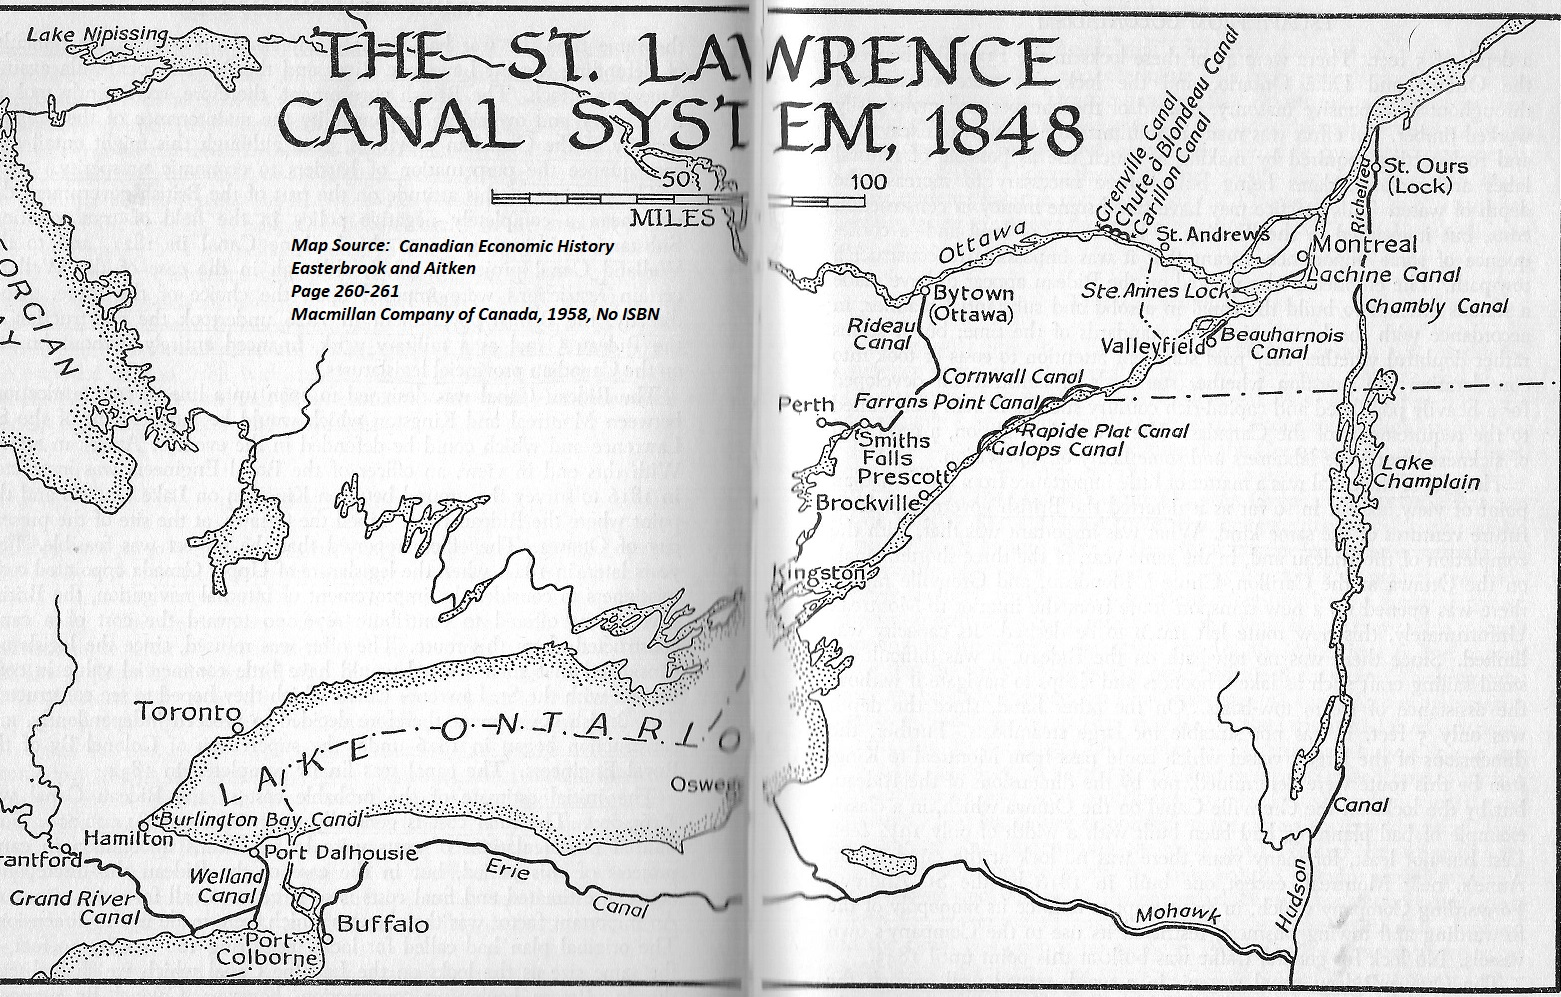 Map of St. Lawrence Canal, 1848